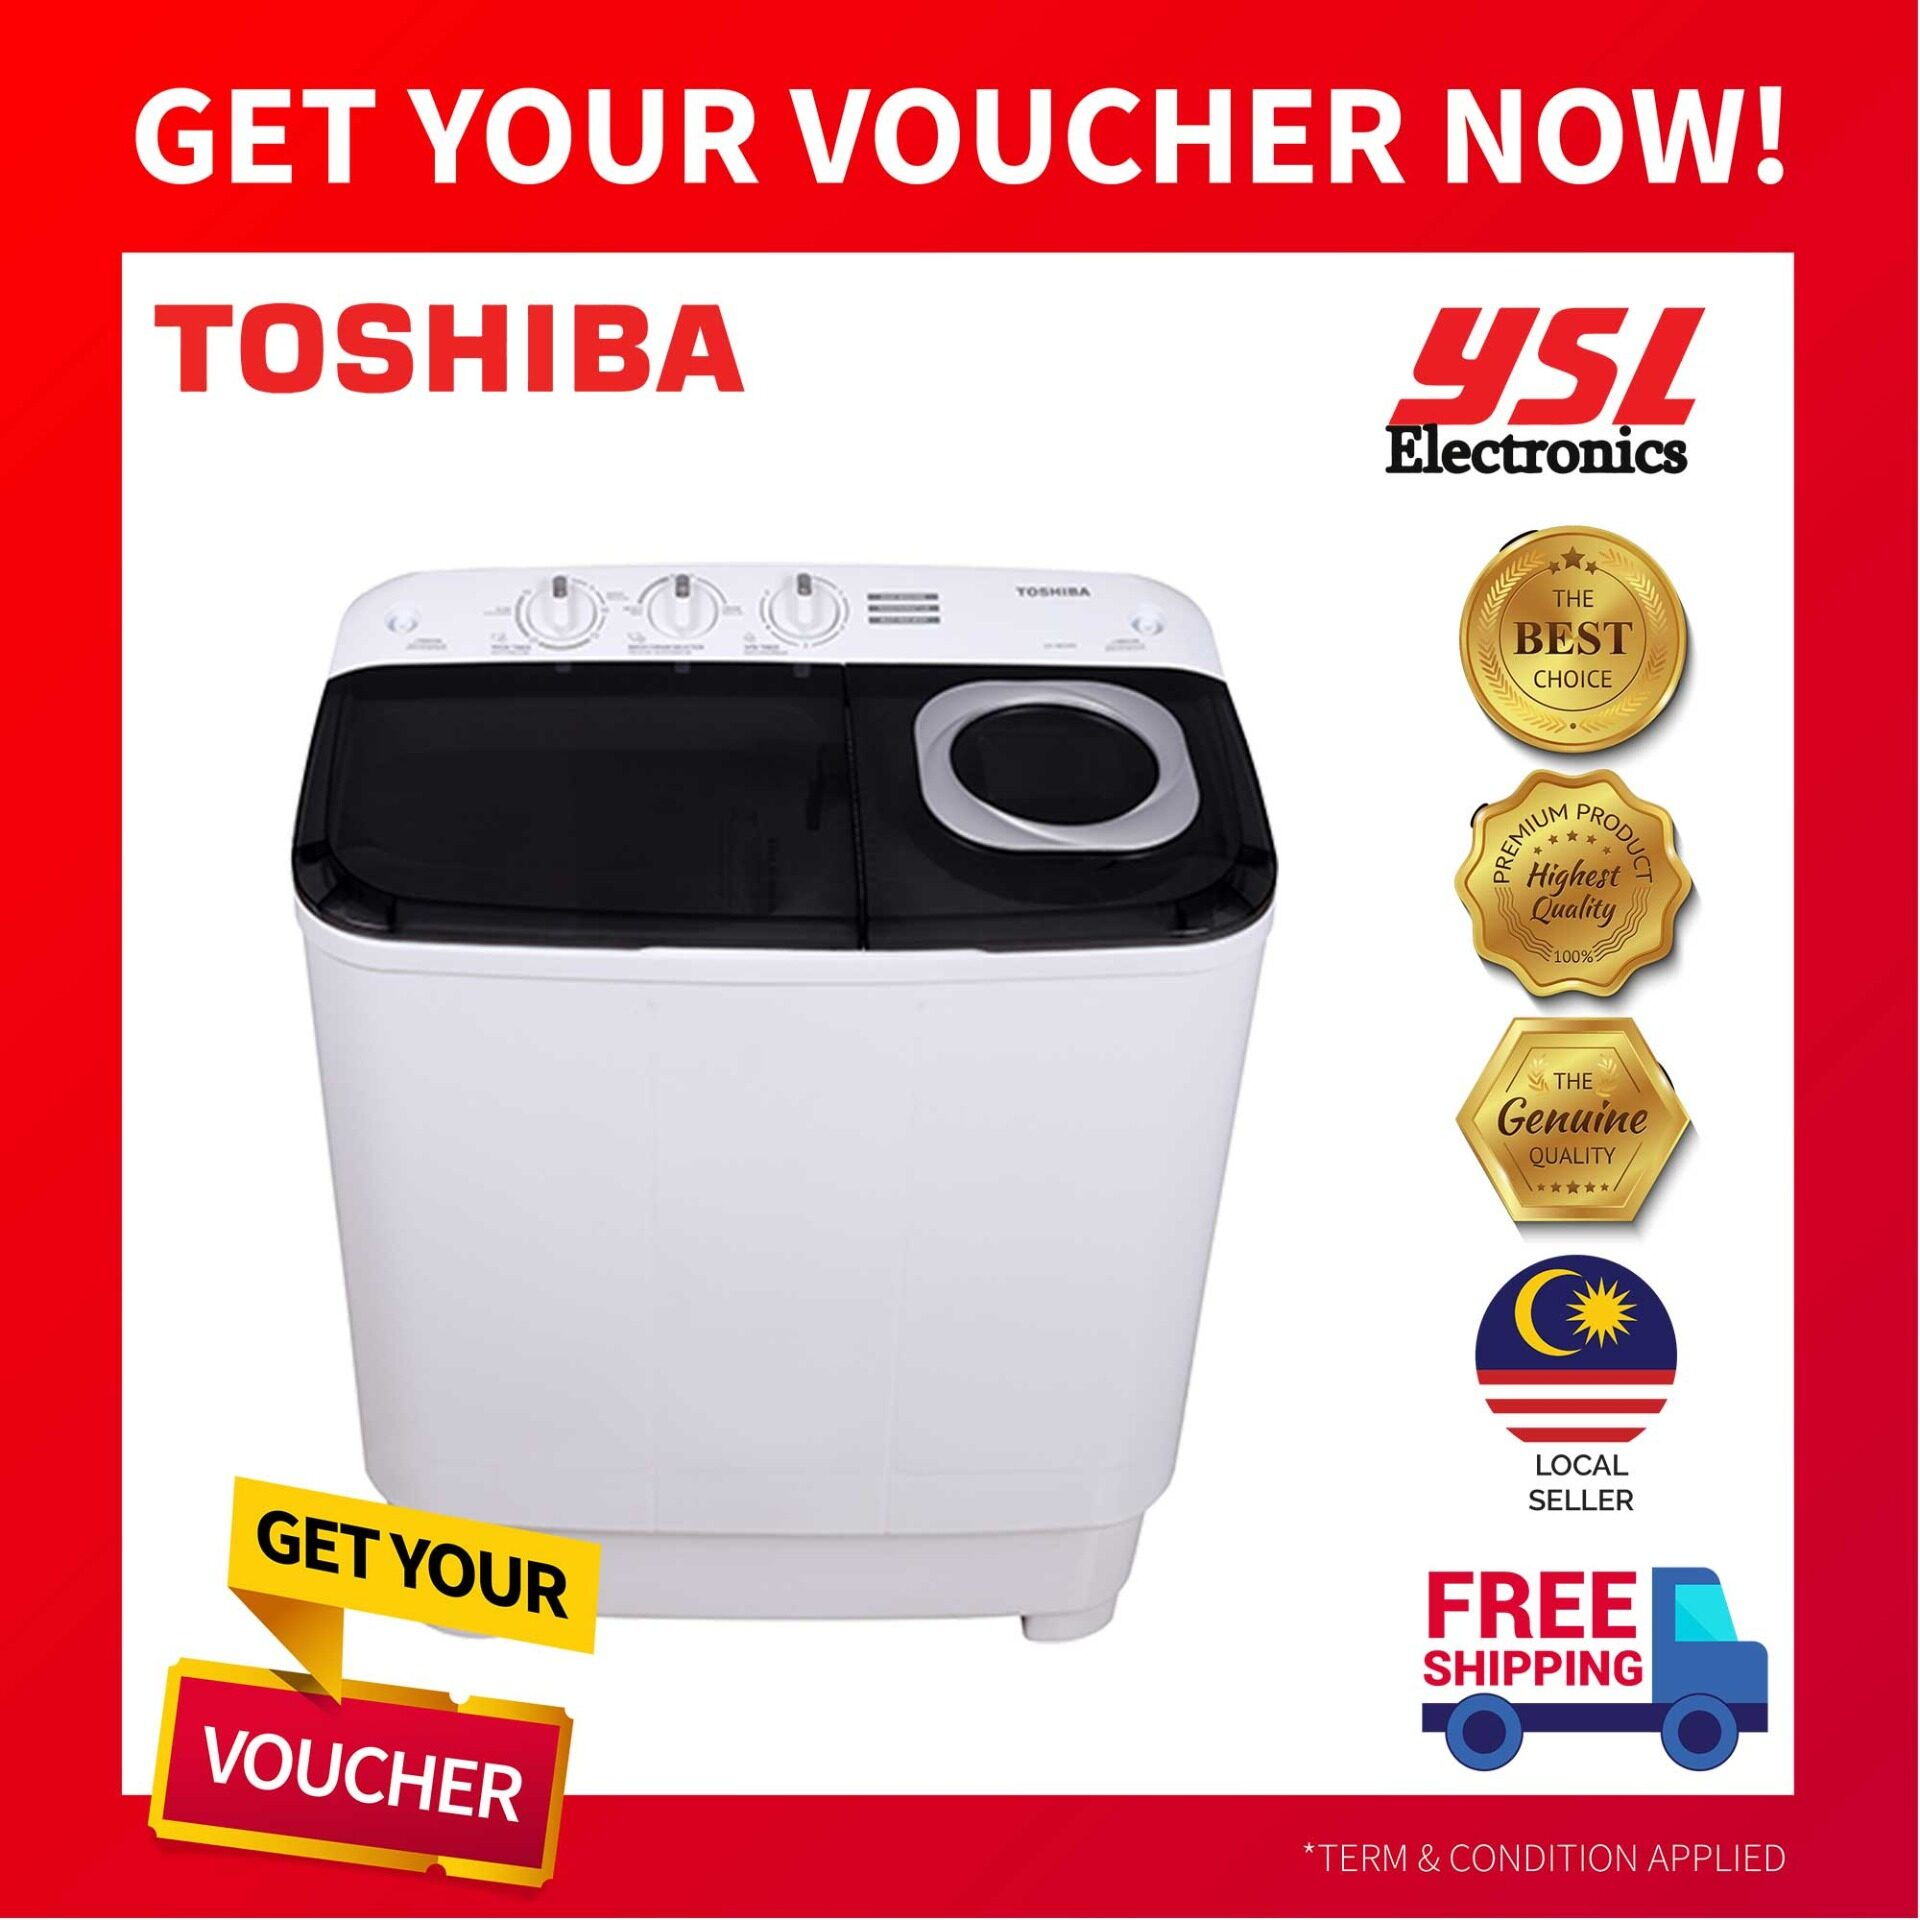 TOSHIBA VH-H95MM SEMI AUTO WASHING MACHINE 8.5KG + *FREE SHIPPING!*